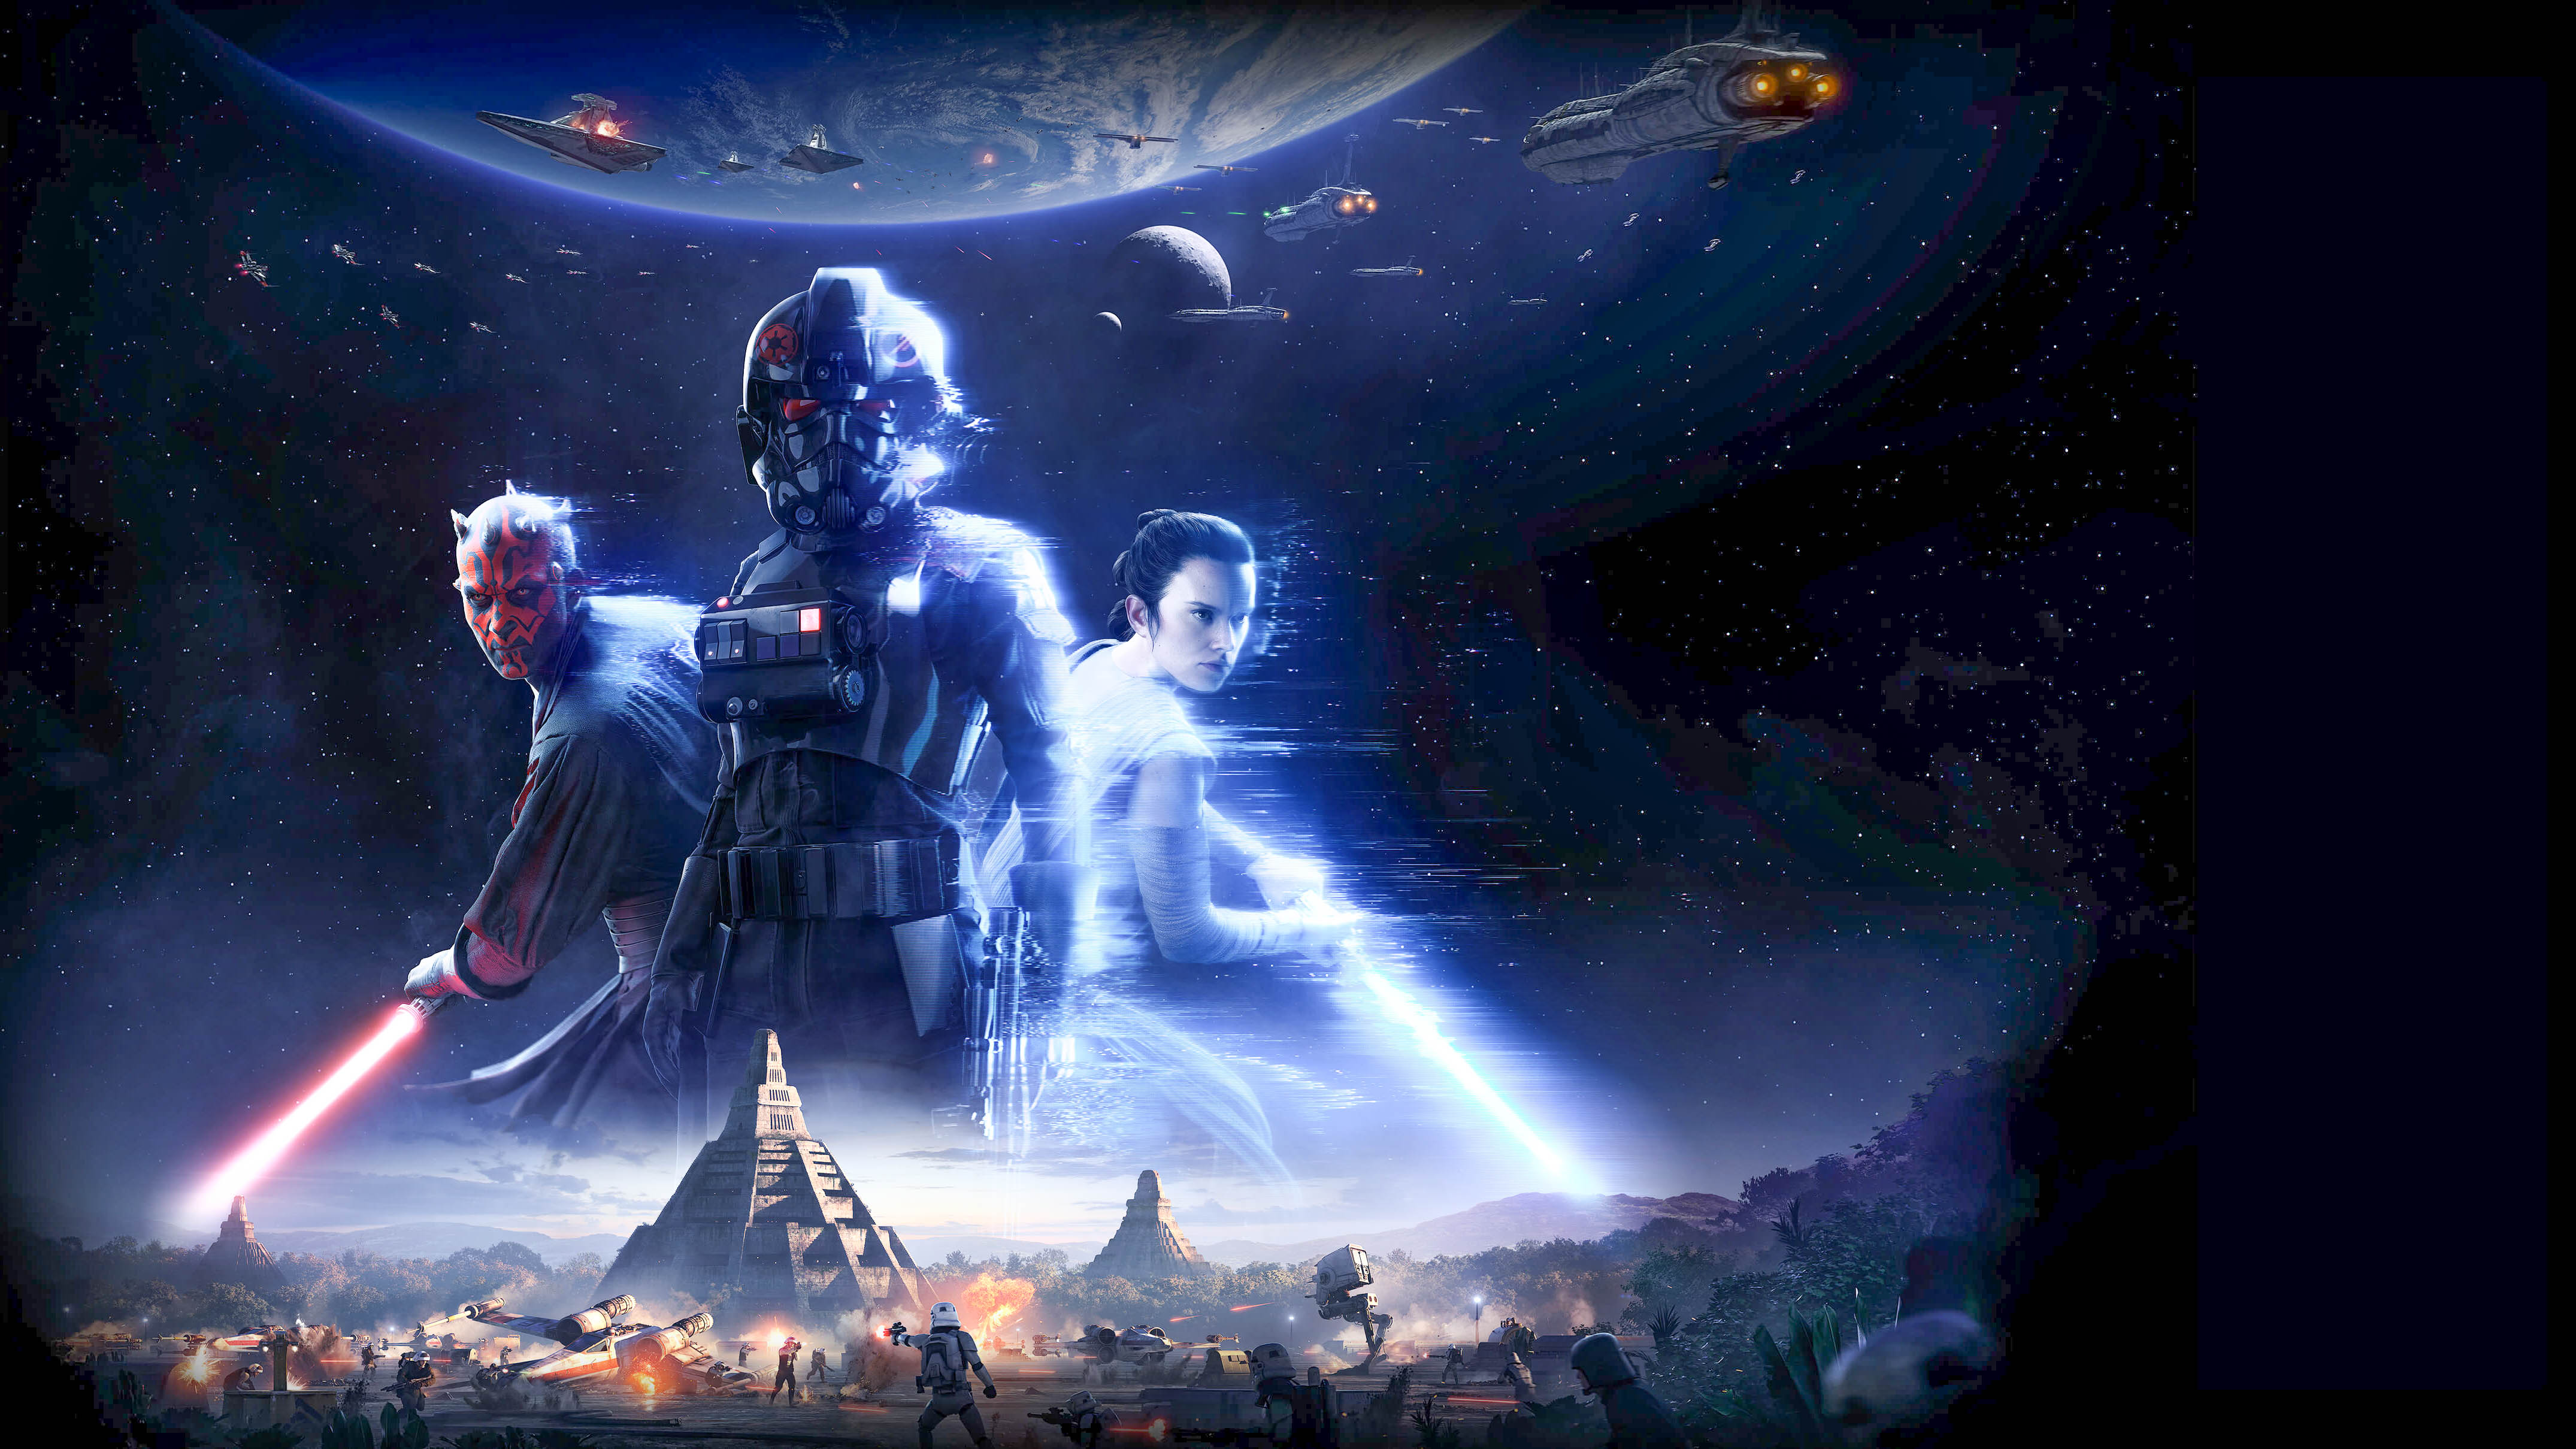 Wallpapers In High Quality Star Wars Battlefront Ii - Star Wars Battlefront 2 Background , HD Wallpaper & Backgrounds